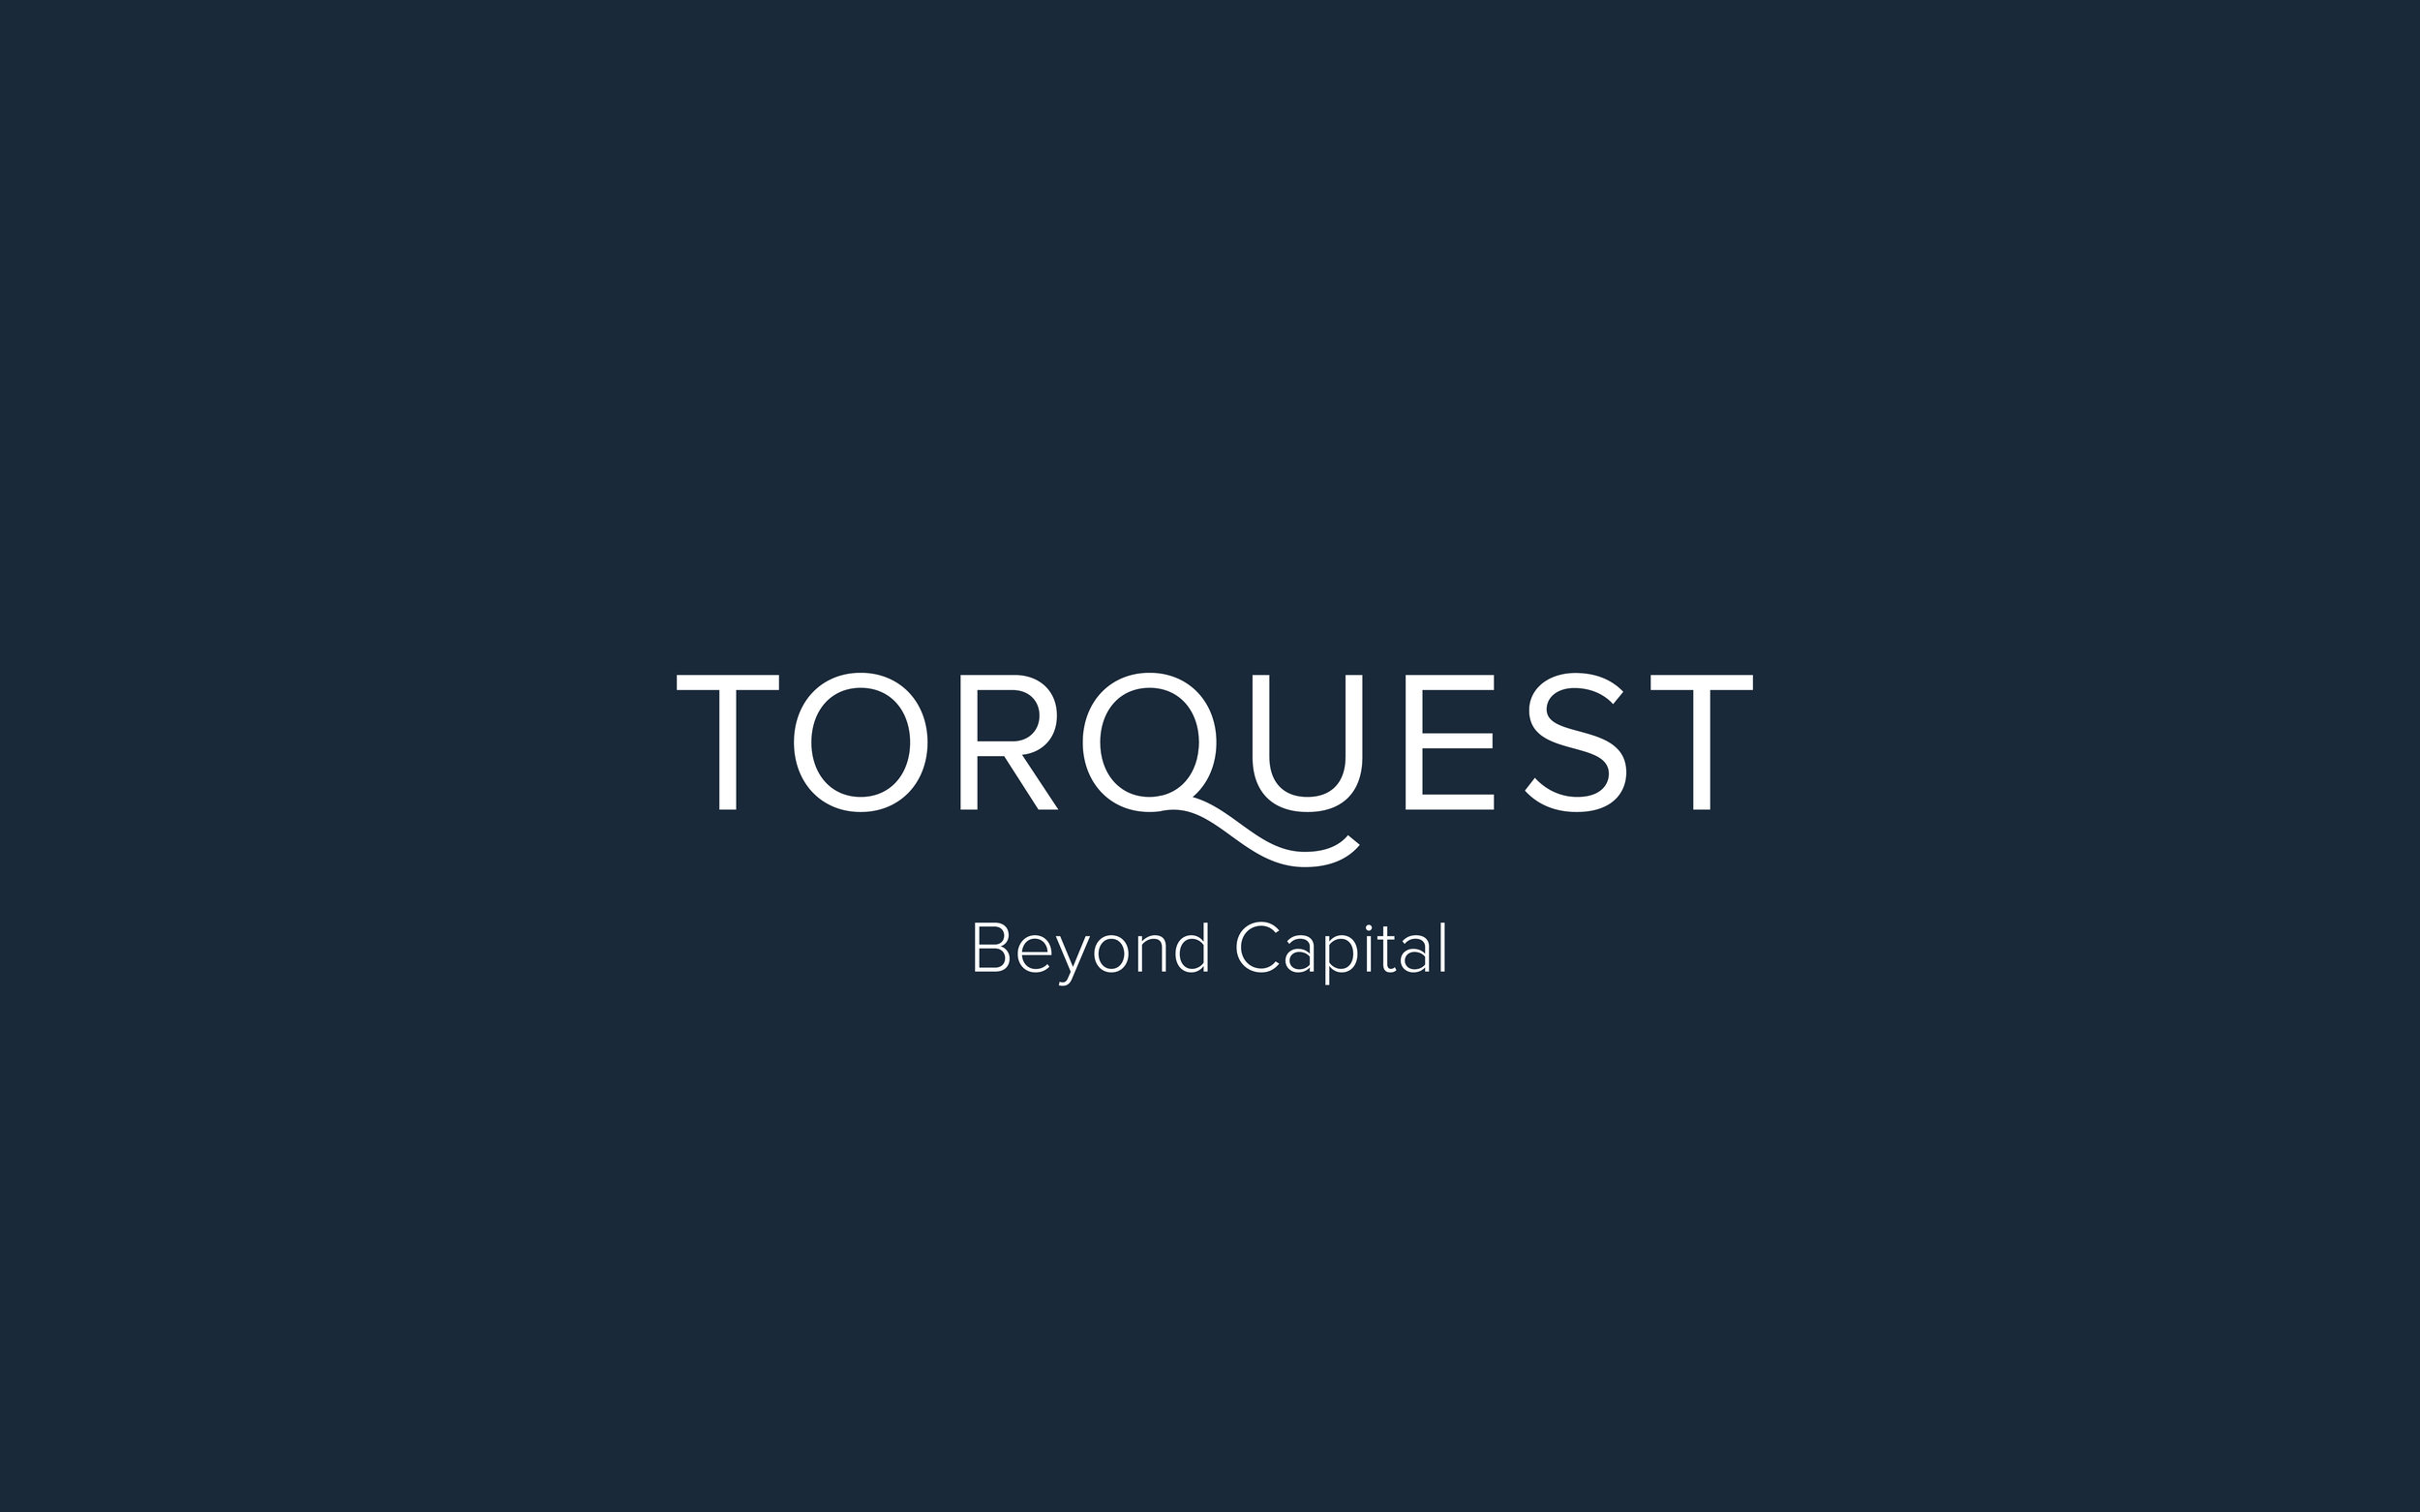 New branding for TorQuest. The logo is a customized version of Proxima Nova with the addition of a modified Q descender.